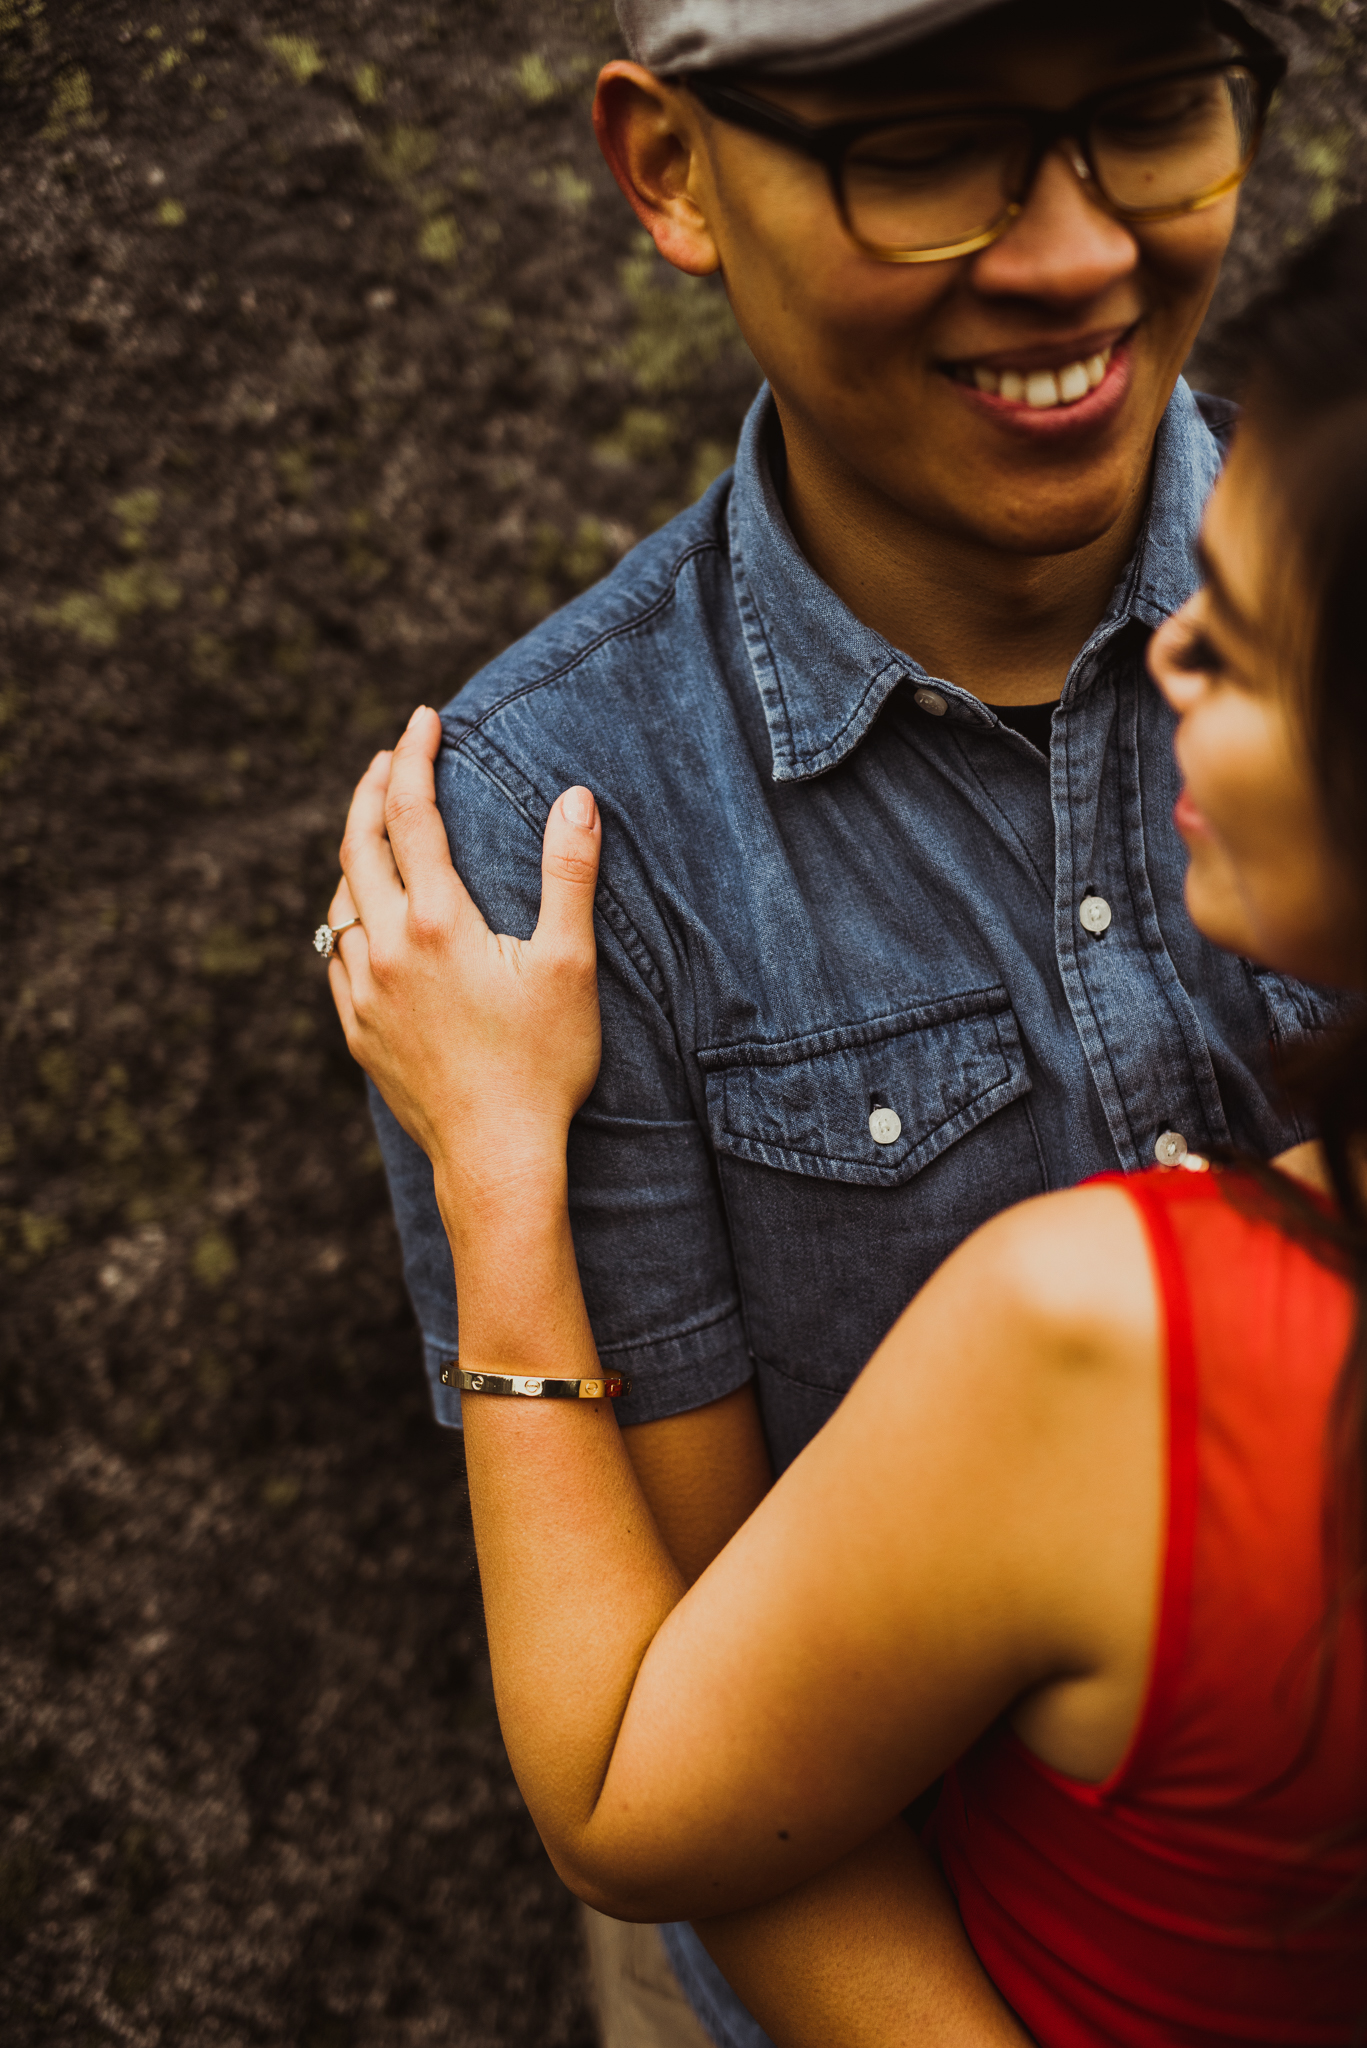 ©Isaiah-&-Taylor-Photography---Hidden-Lake-Cascade-Mountains-Engagement,-Washington-095.jpg